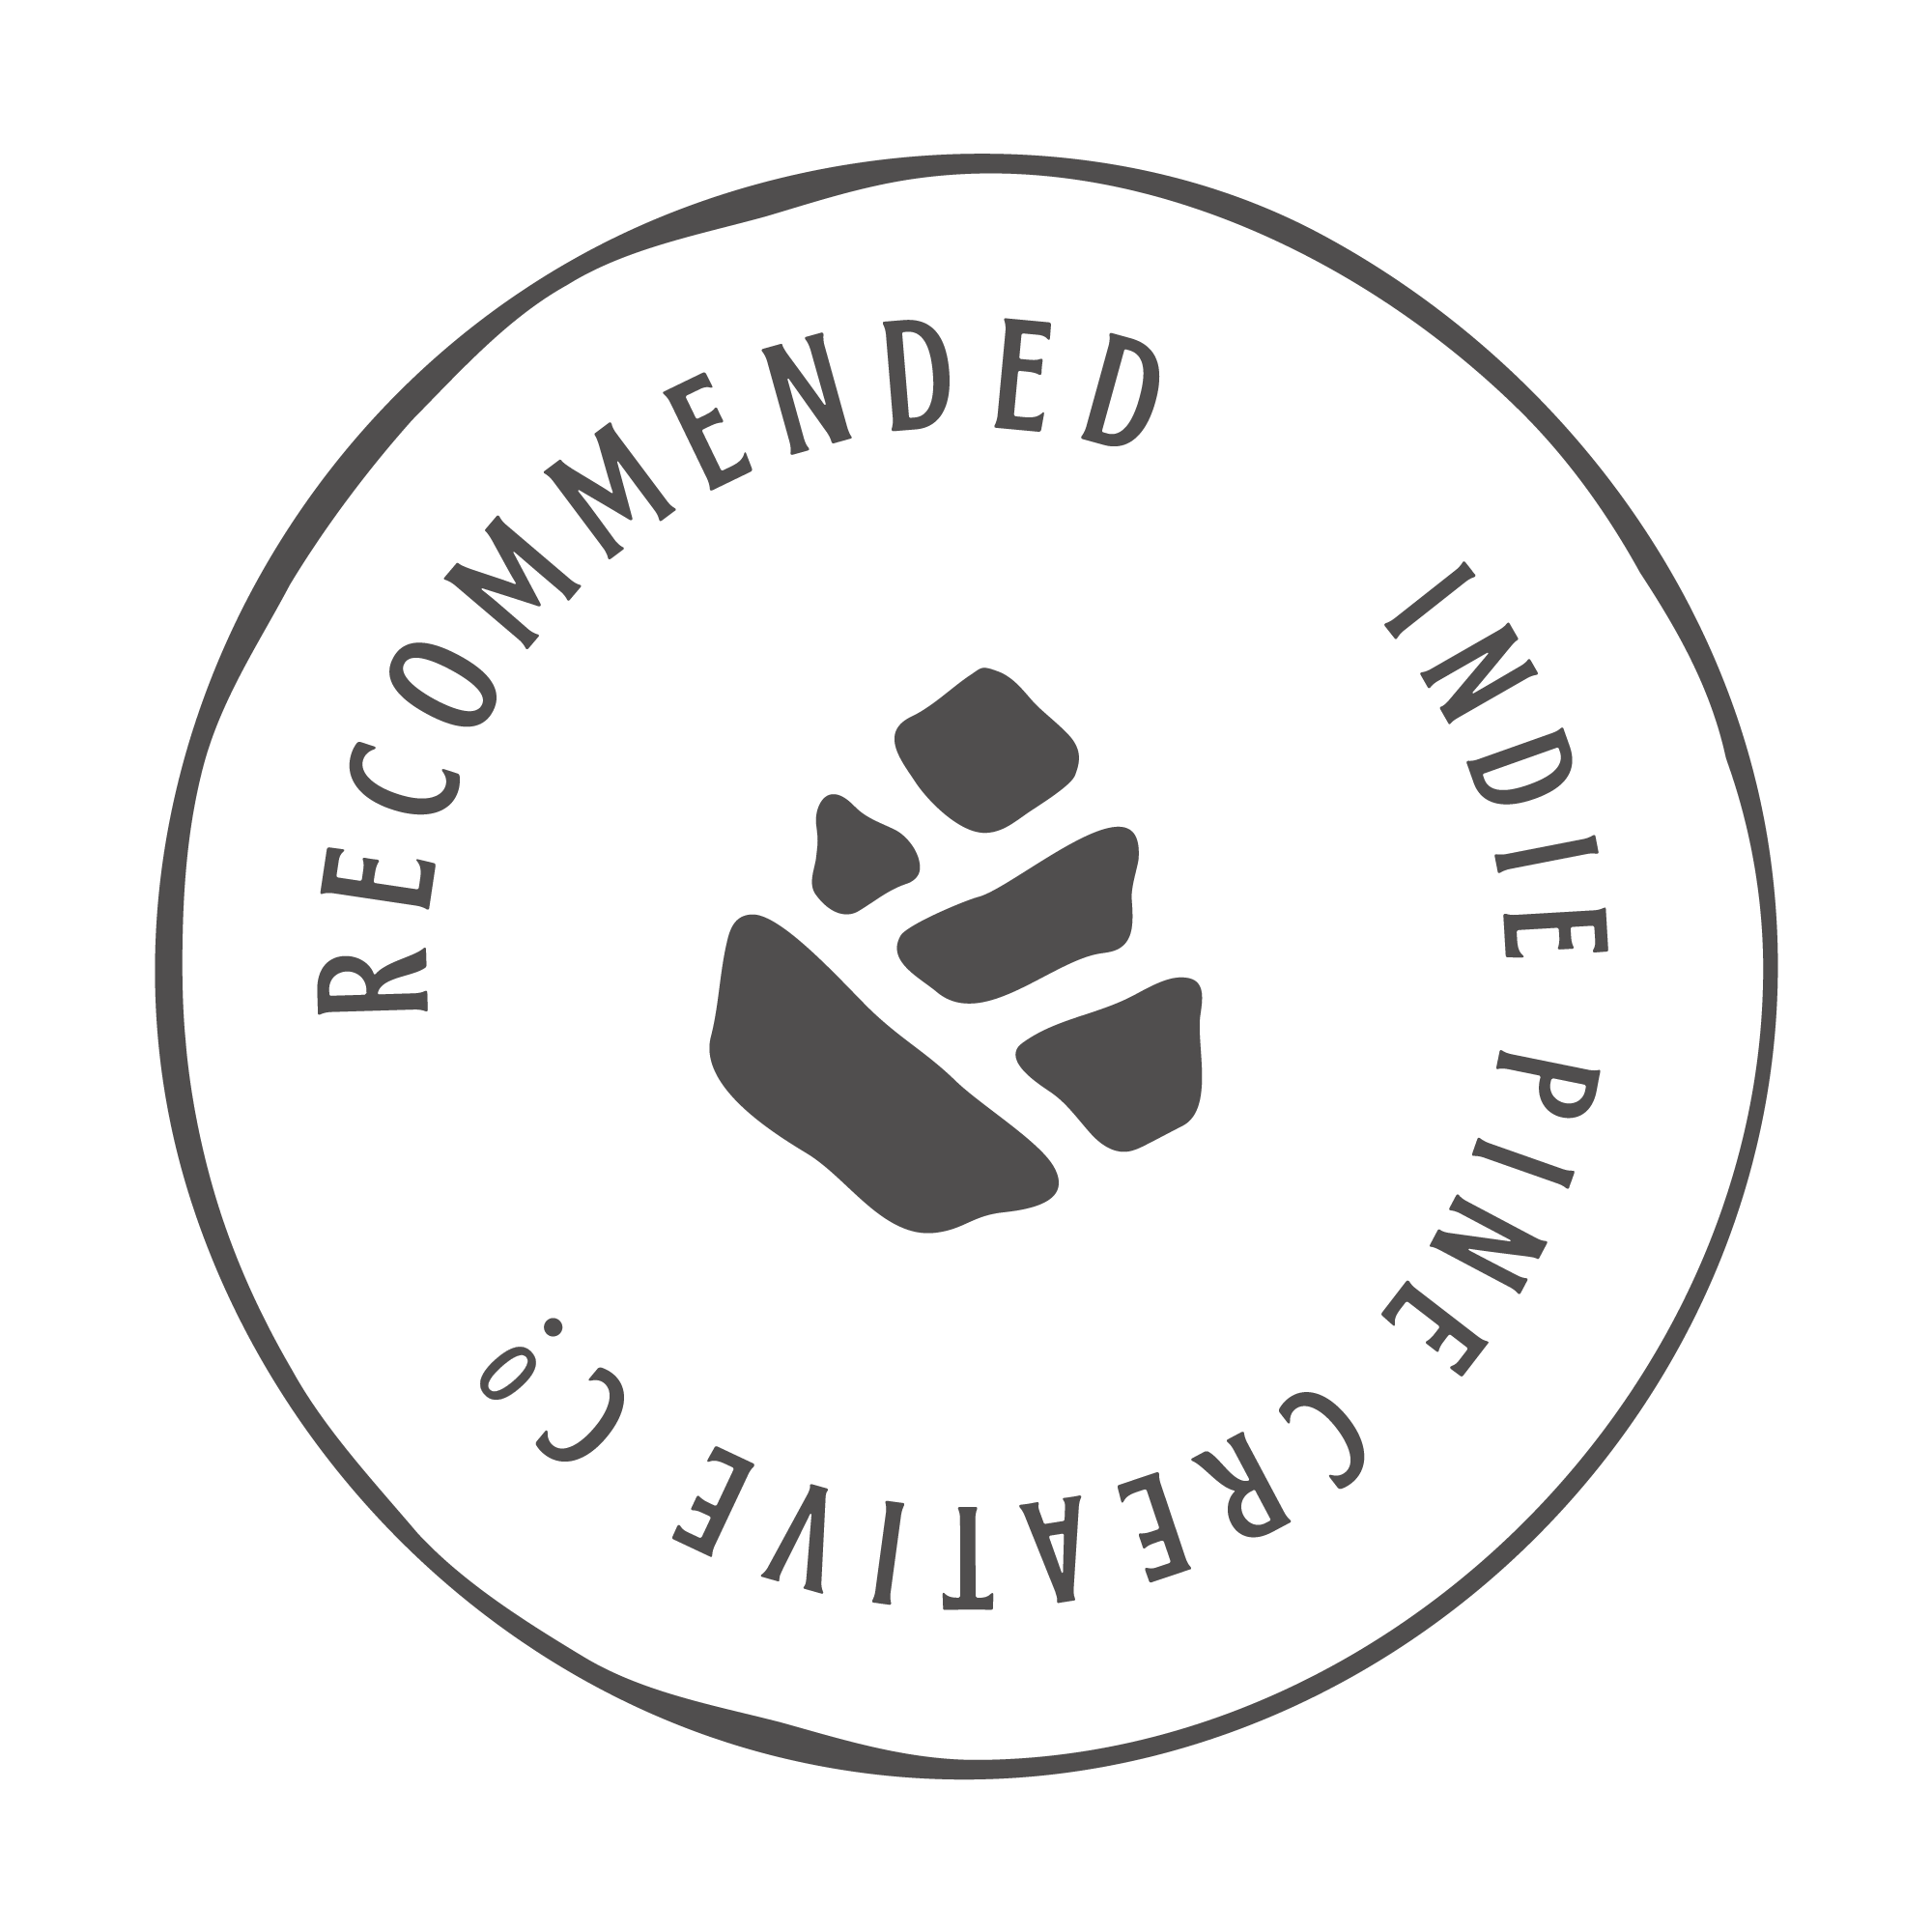 RECOMMEND-BADGE-01.png